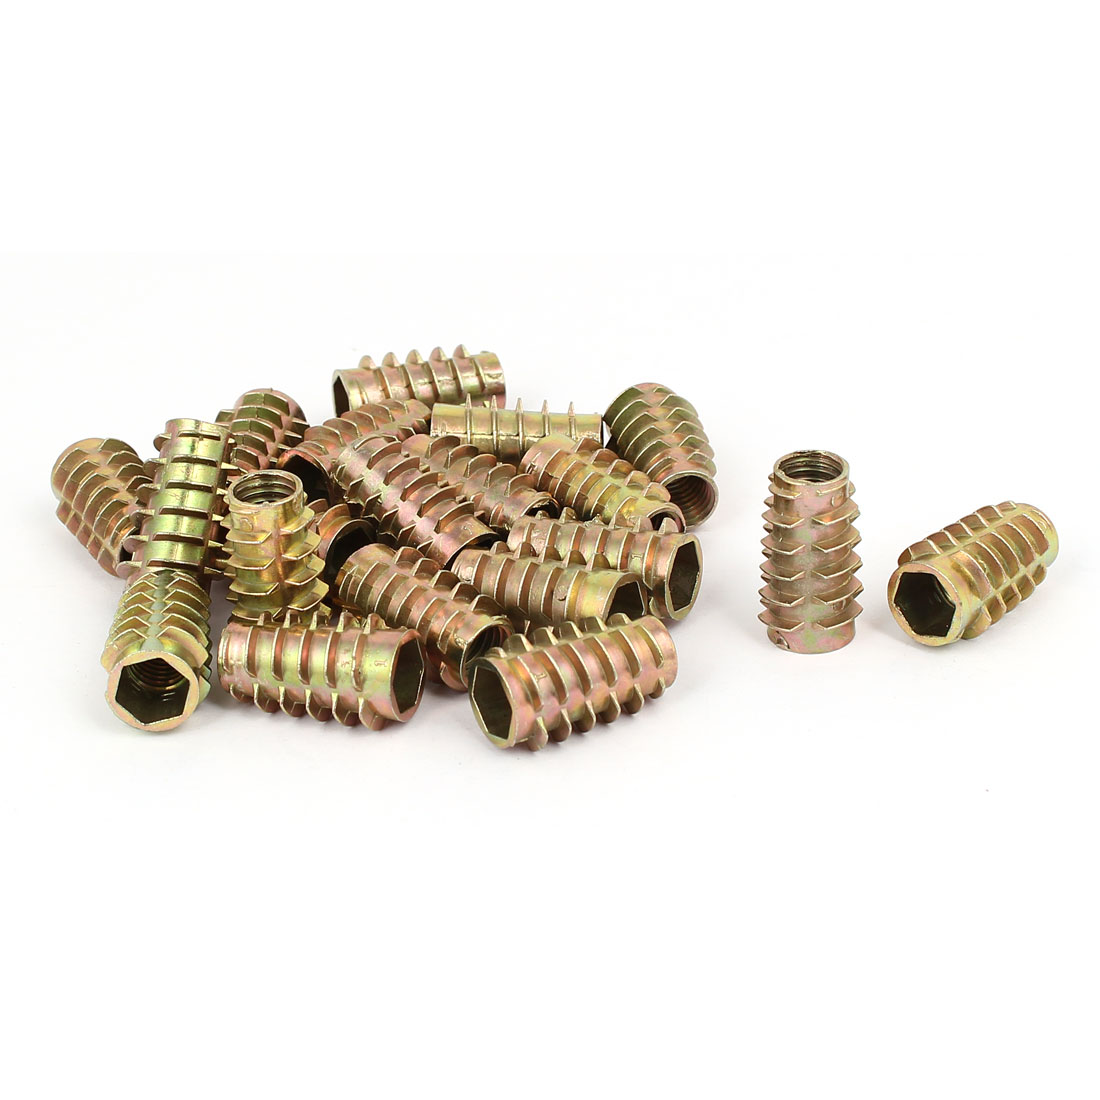 Wood Furniture Zinc Alloy Hex Socket Insert Screws E-Nuts M8x25mm 20pcs